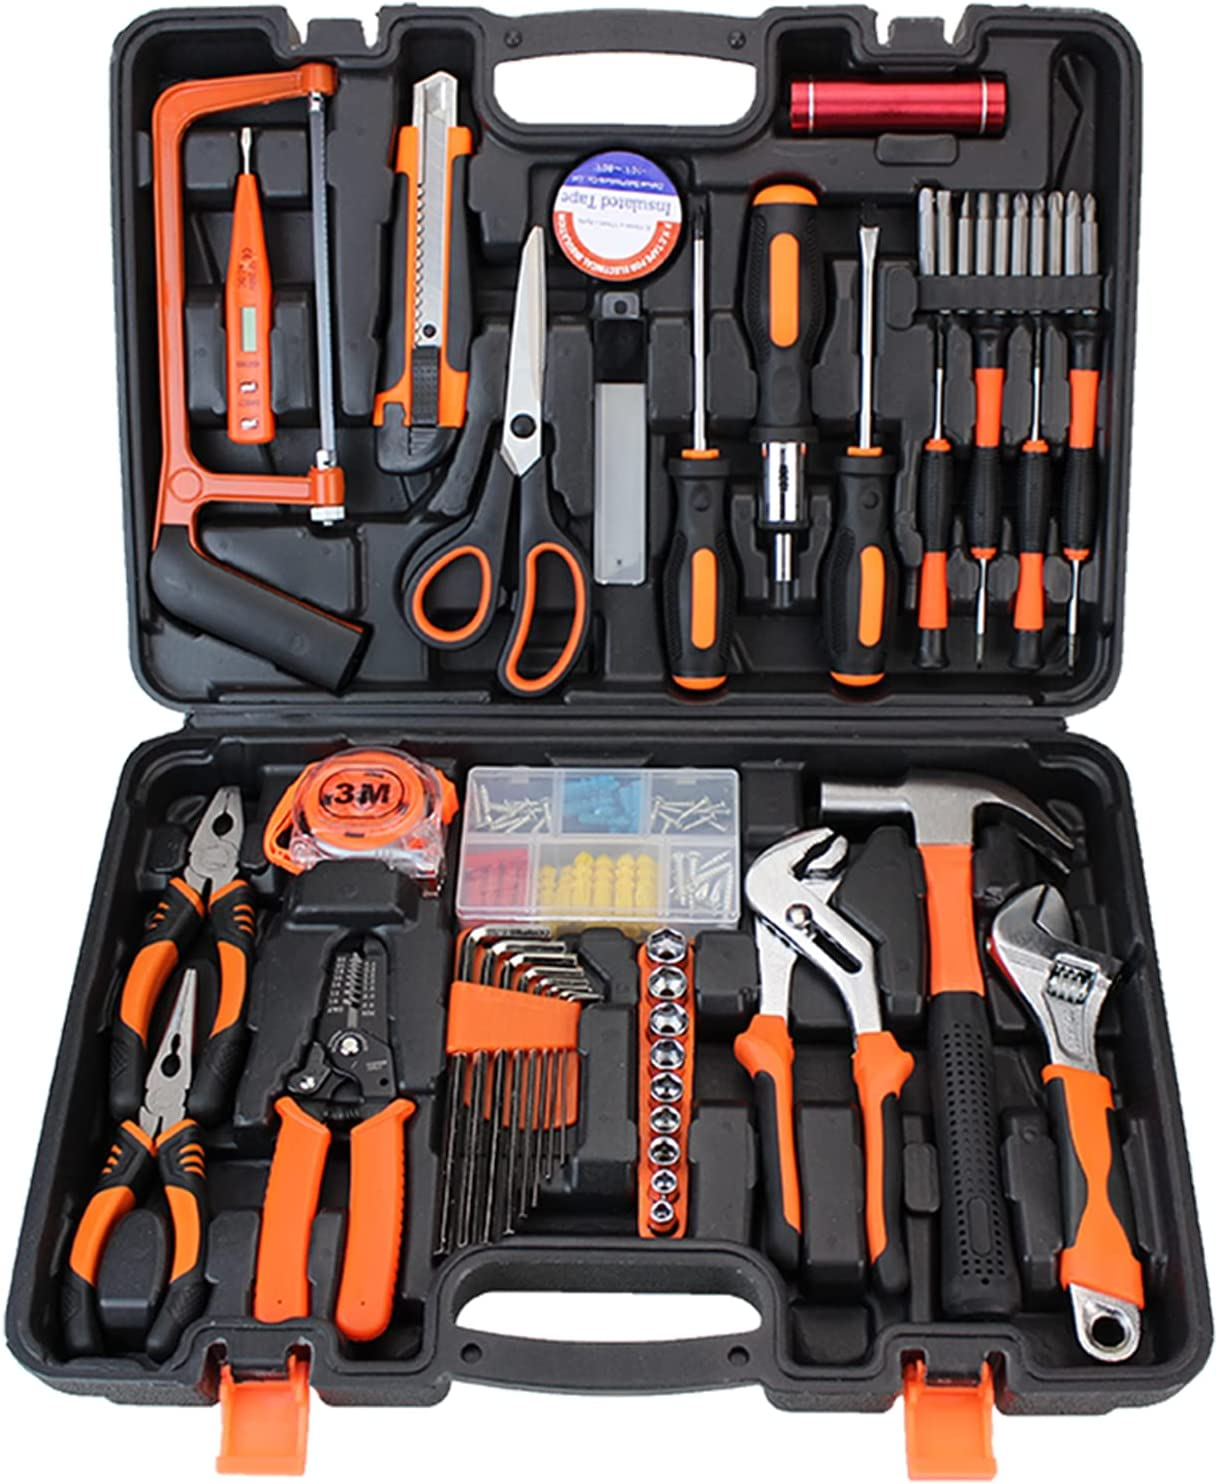 50-Piece Auto Repair Tool Set Home Jacksonville Mall Household Fo General Now free shipping Kit